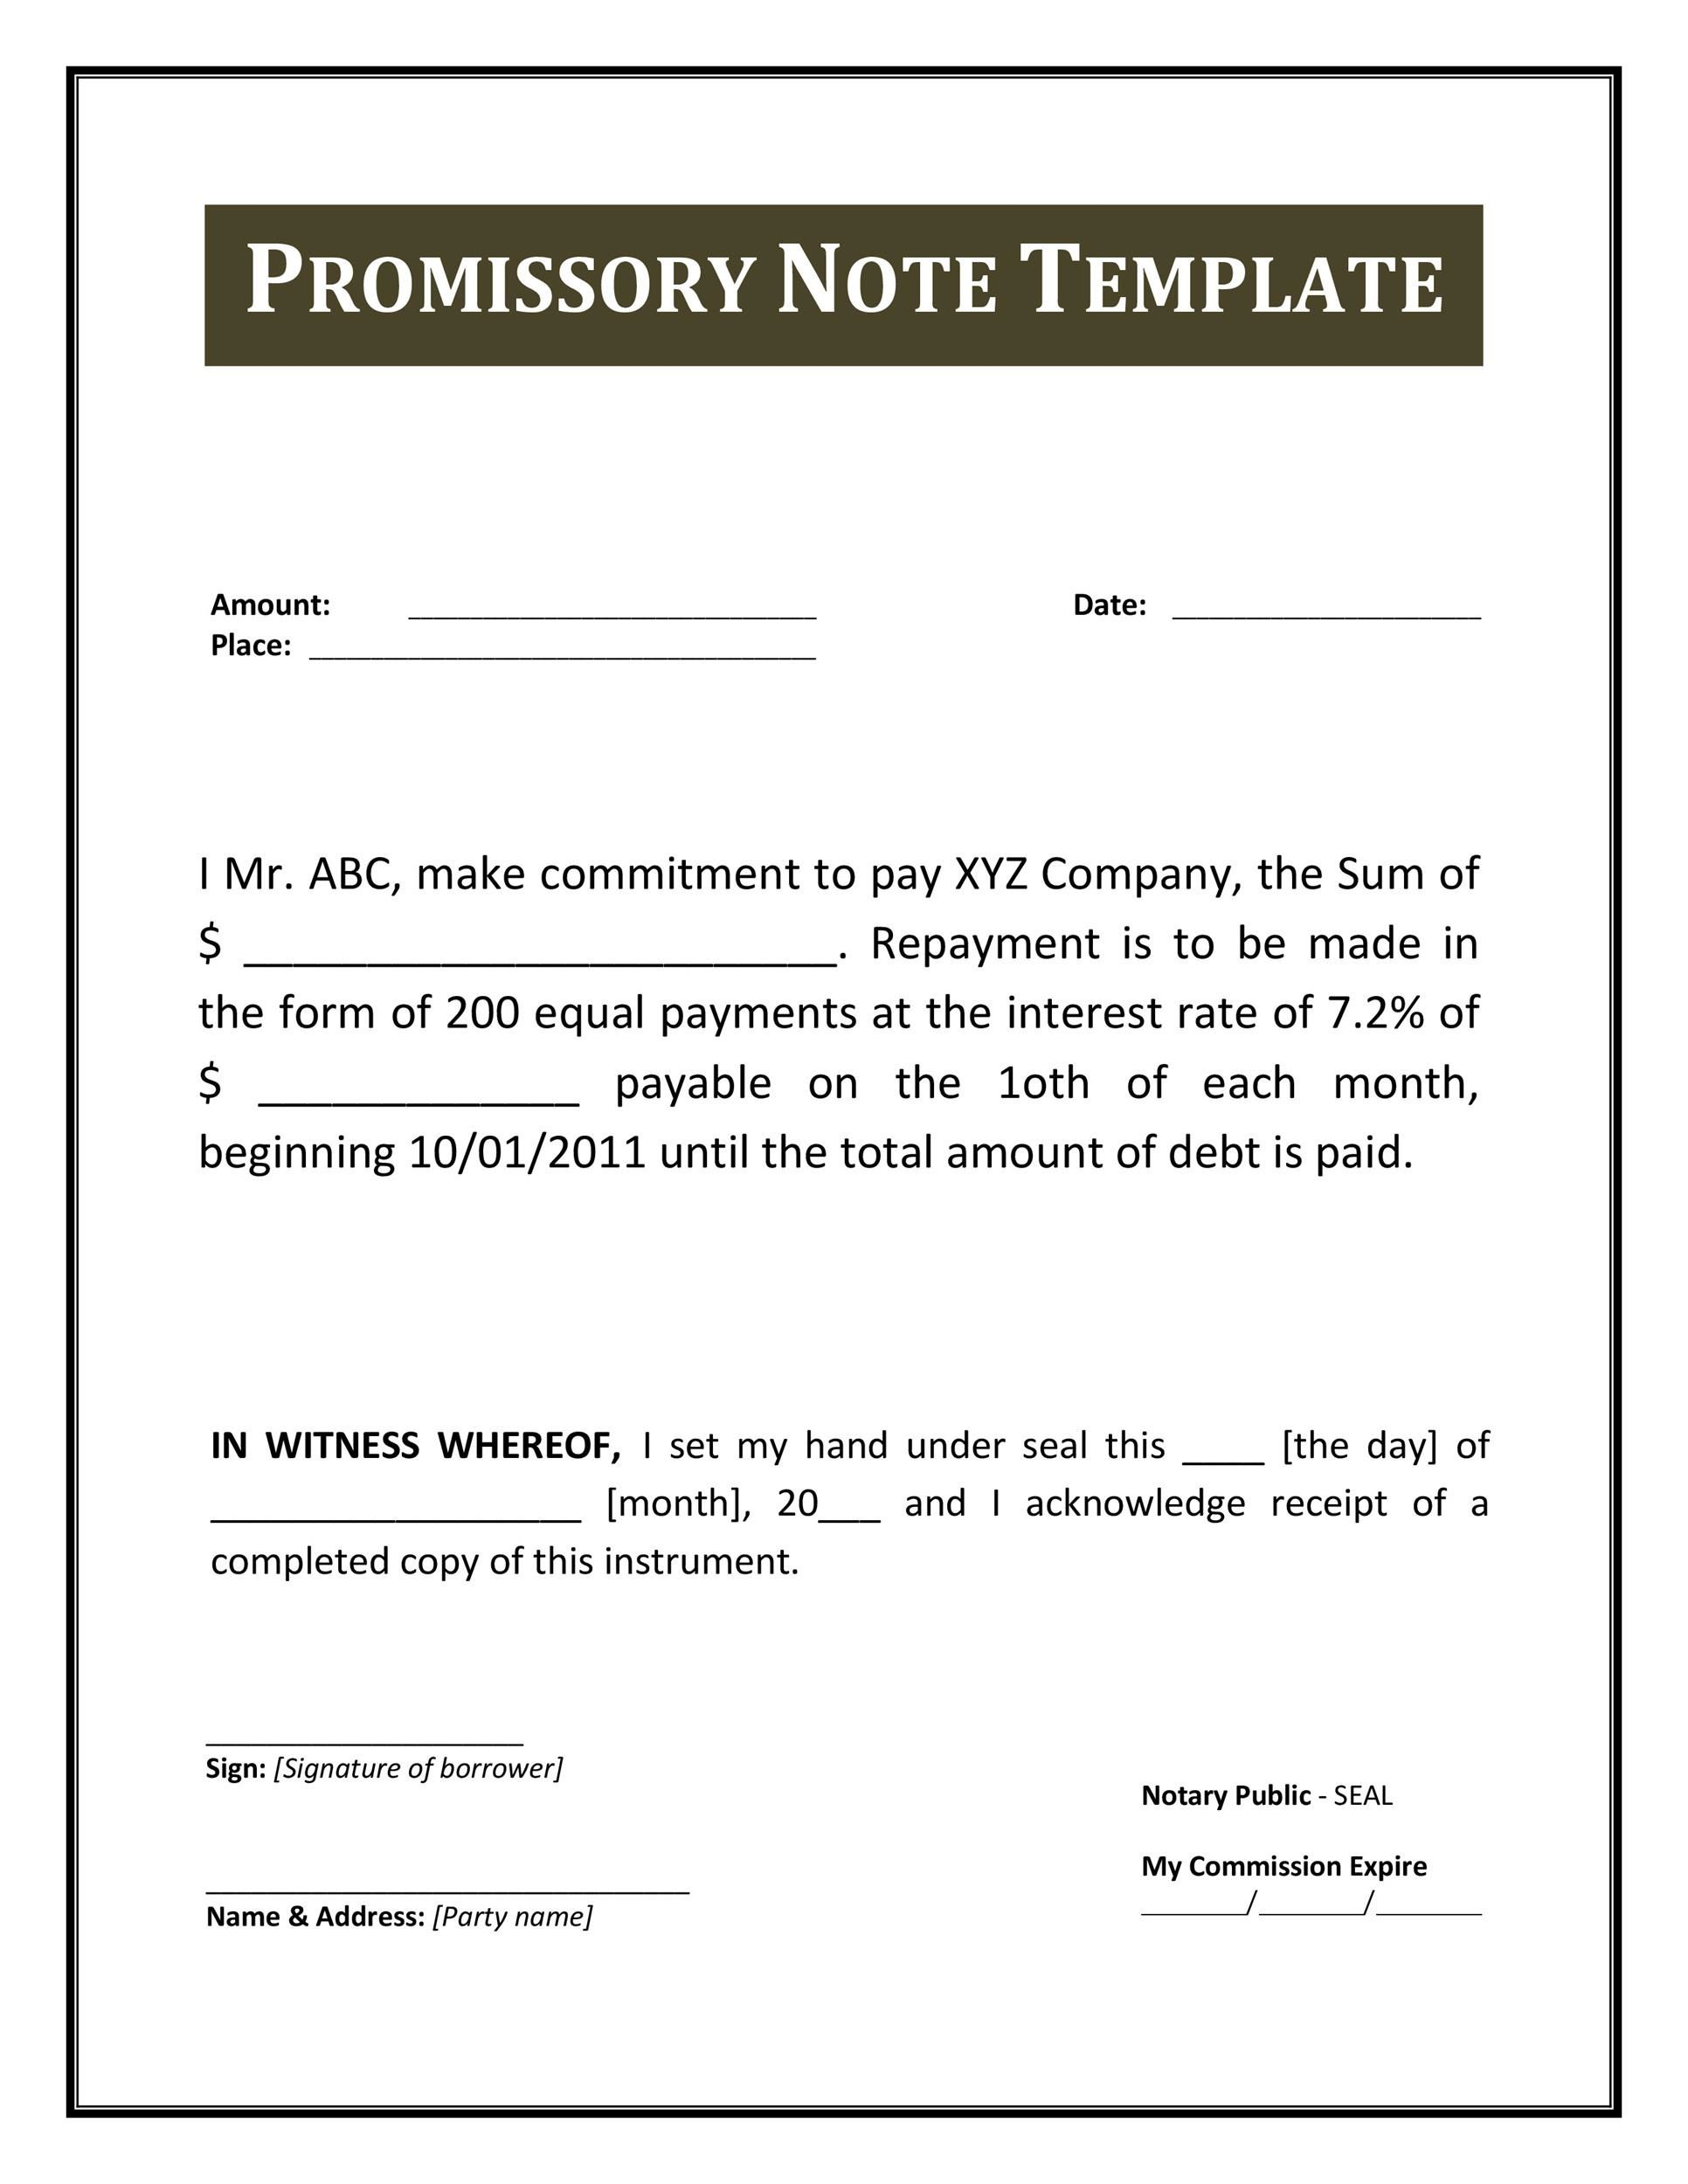 006 Staggering Real Estate Promissory Note Template Picture  Pdf The Commission Approved Earnest Money FormFull